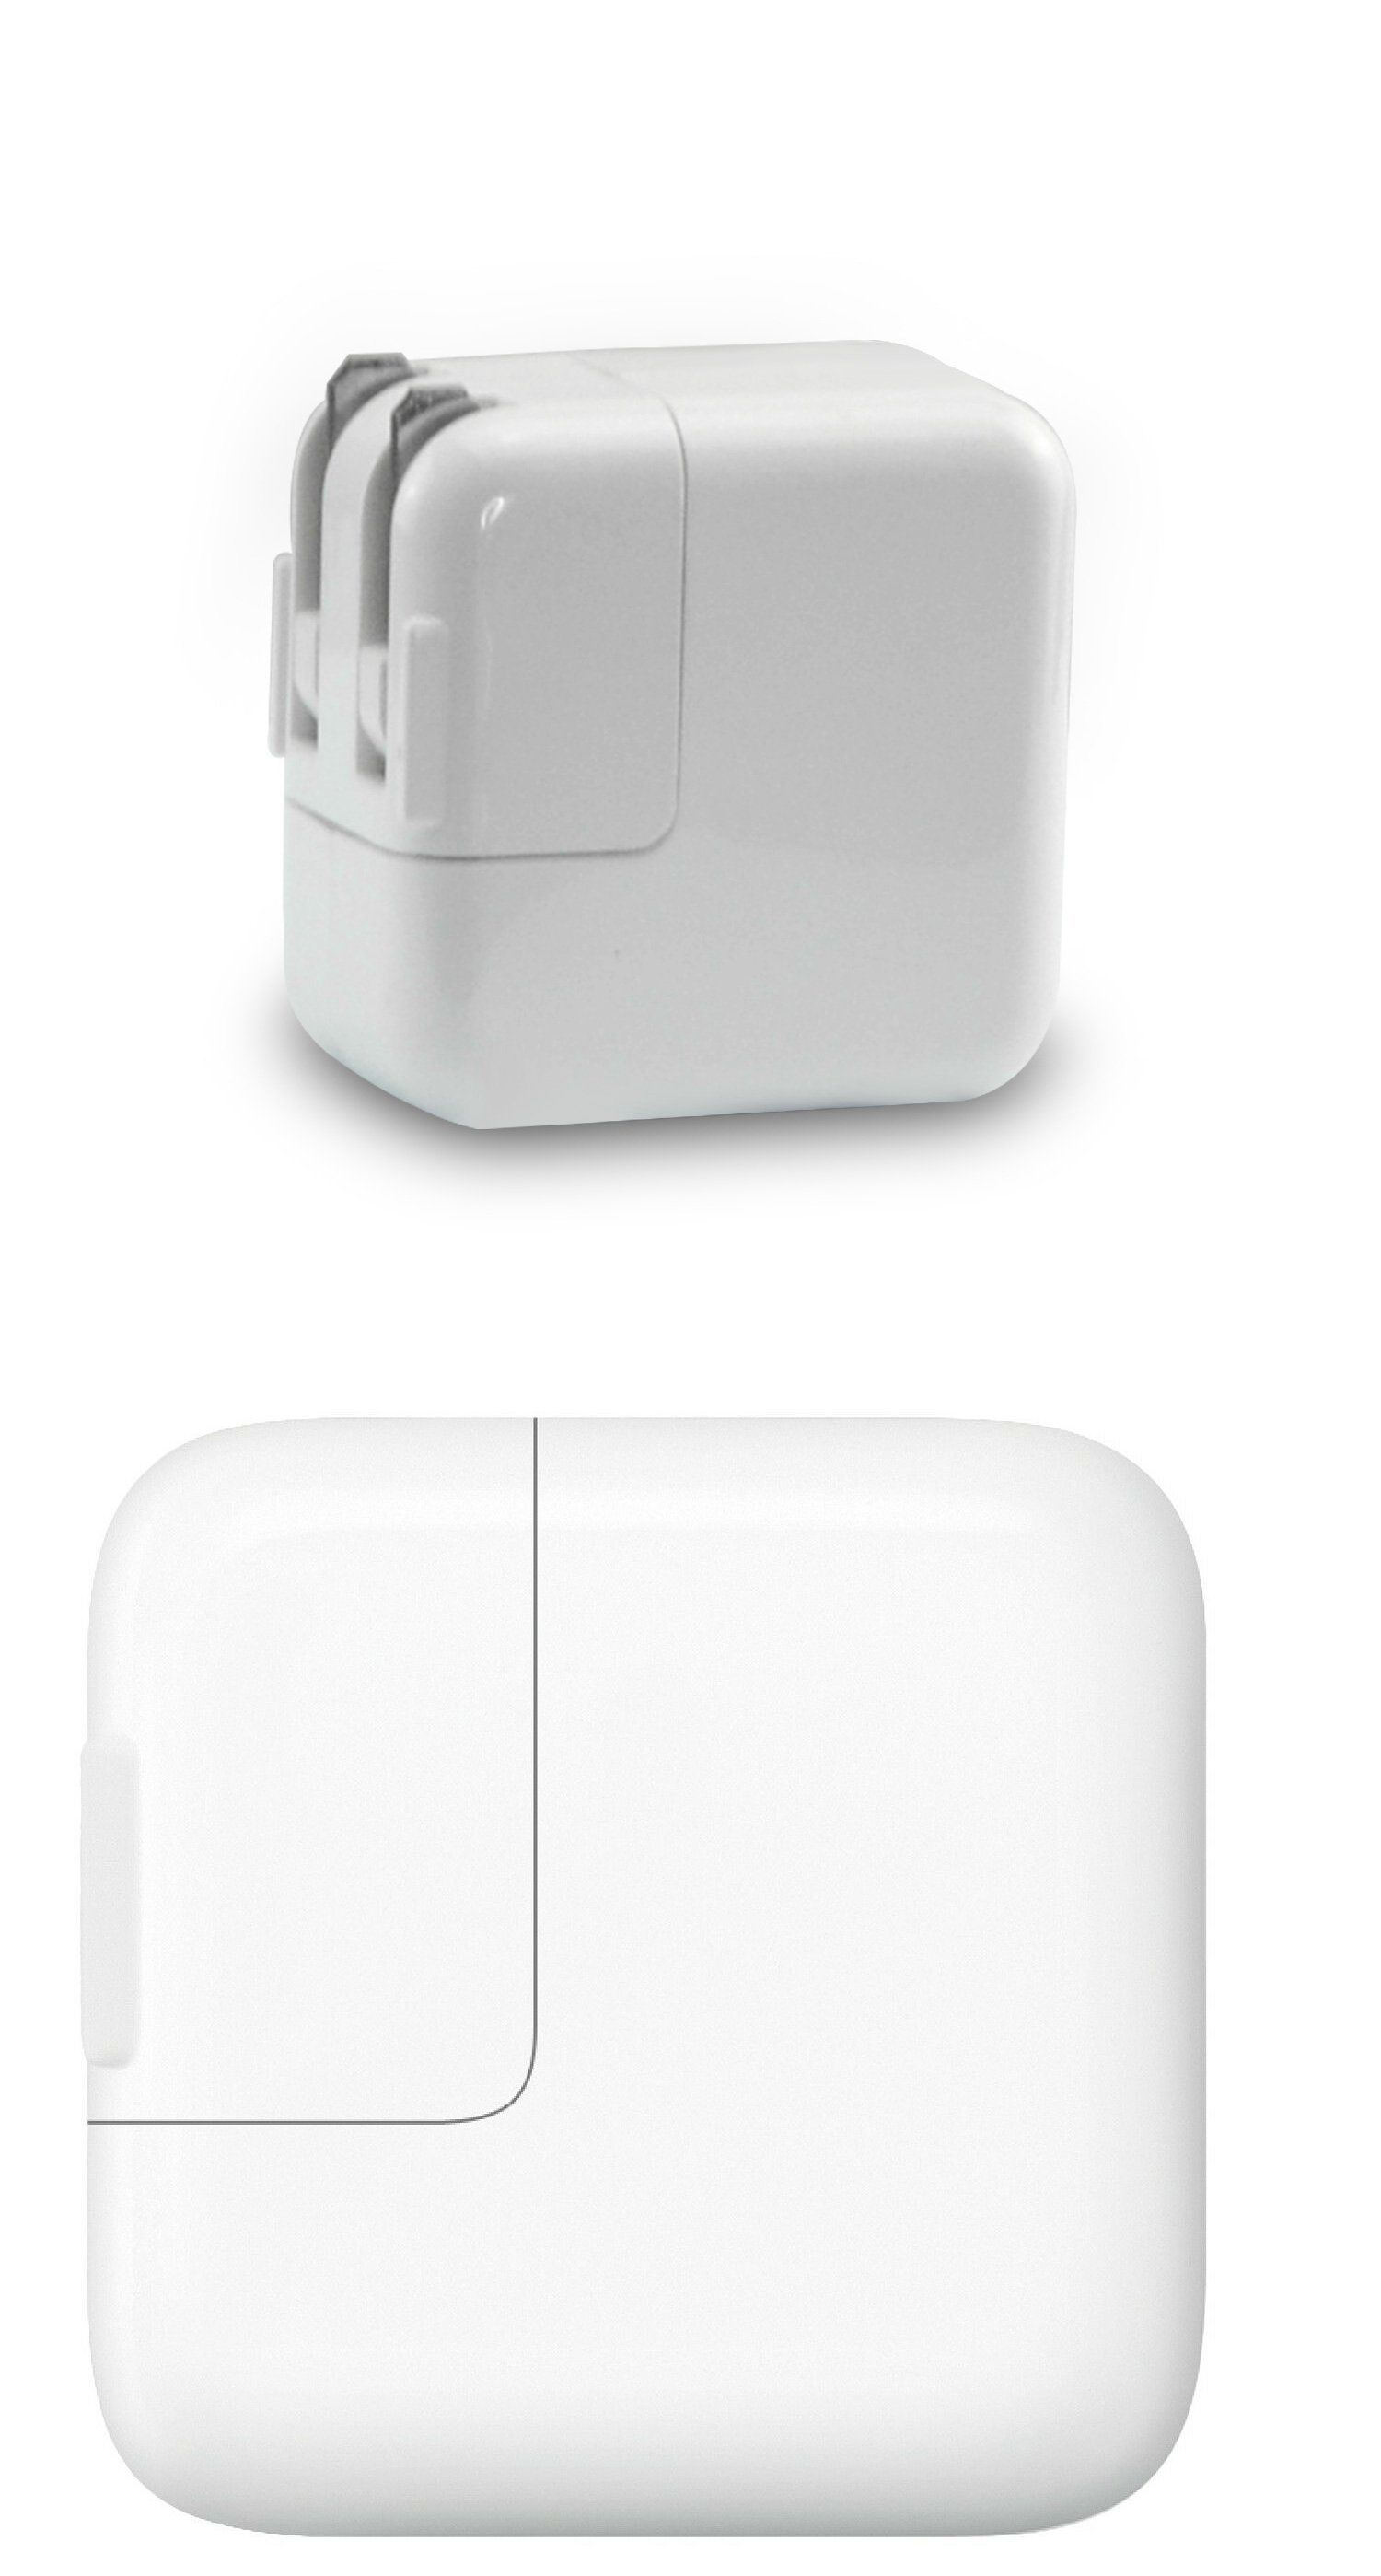 Genuine Apple iPad iPhone 12W USB Power Adapter Wall Charger A1401